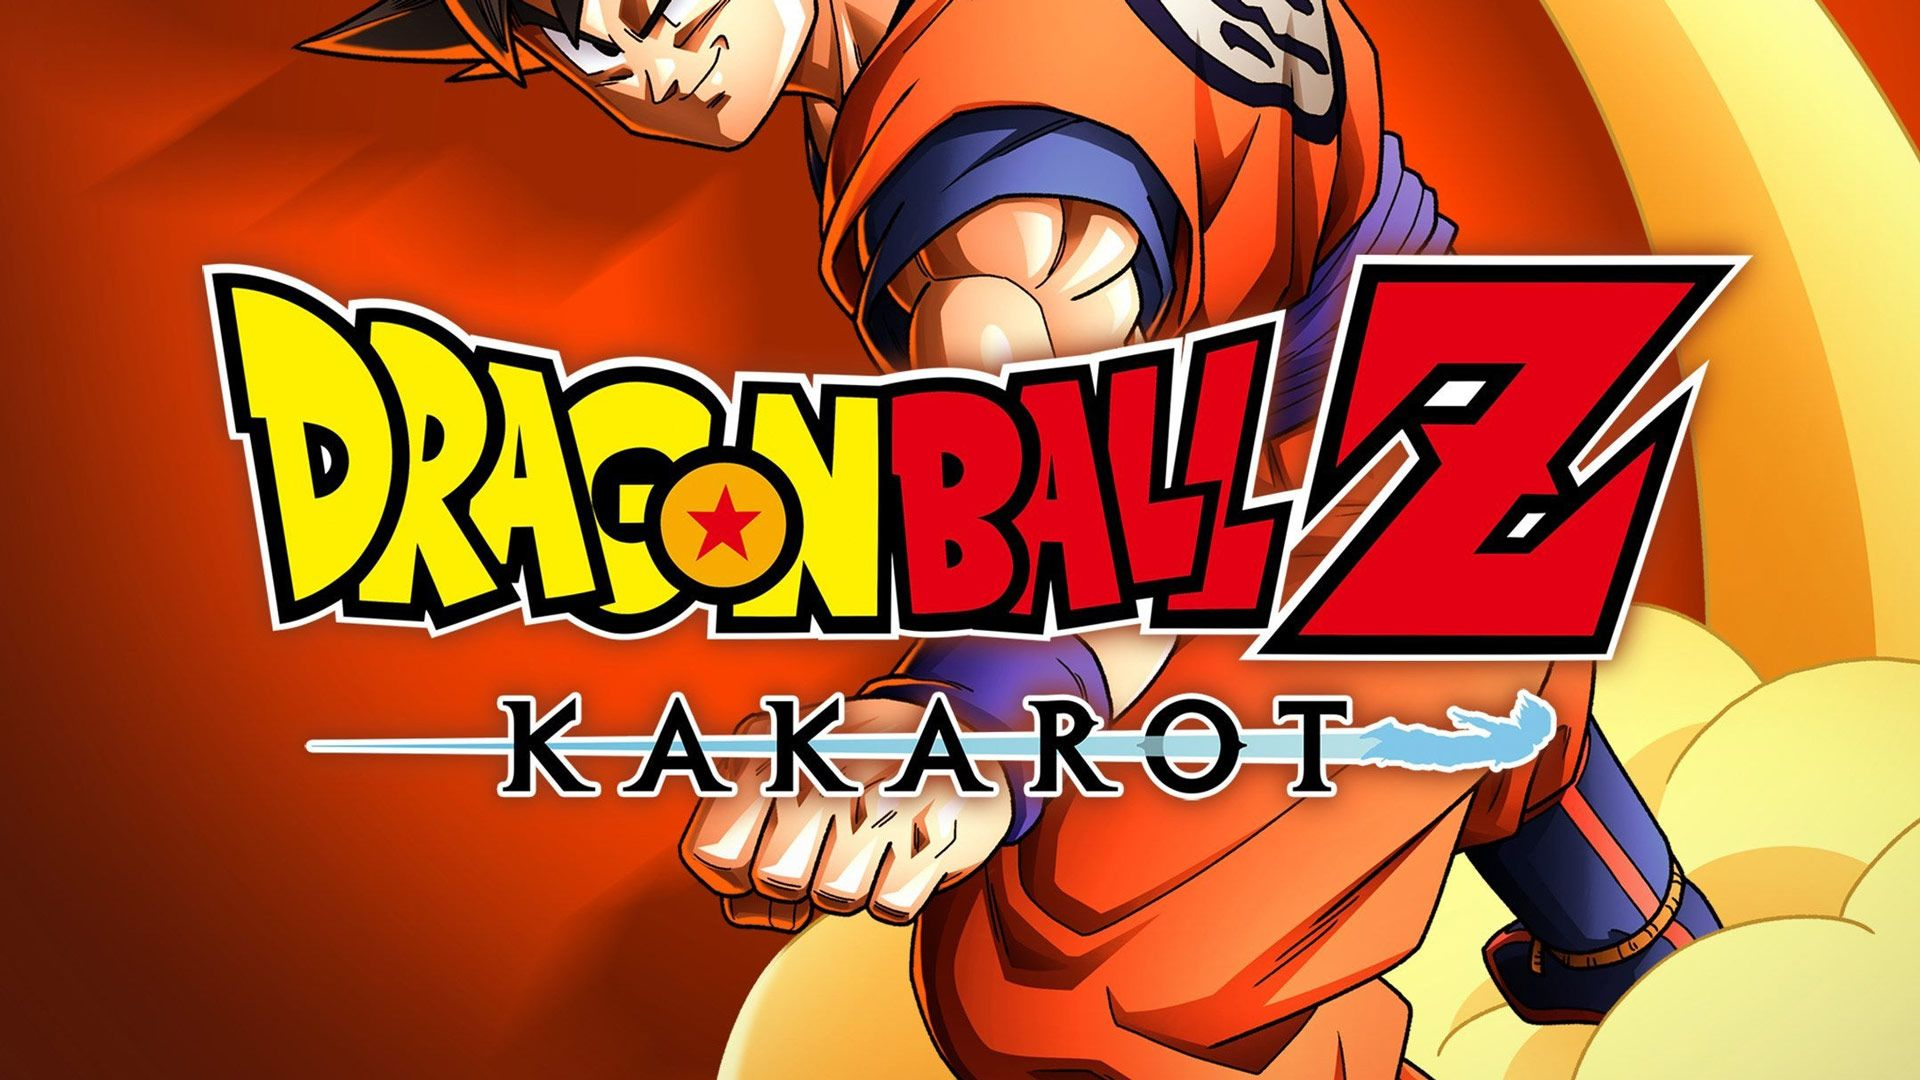 Dragon Ball Z Kakarot Massive Day One Update File Size and